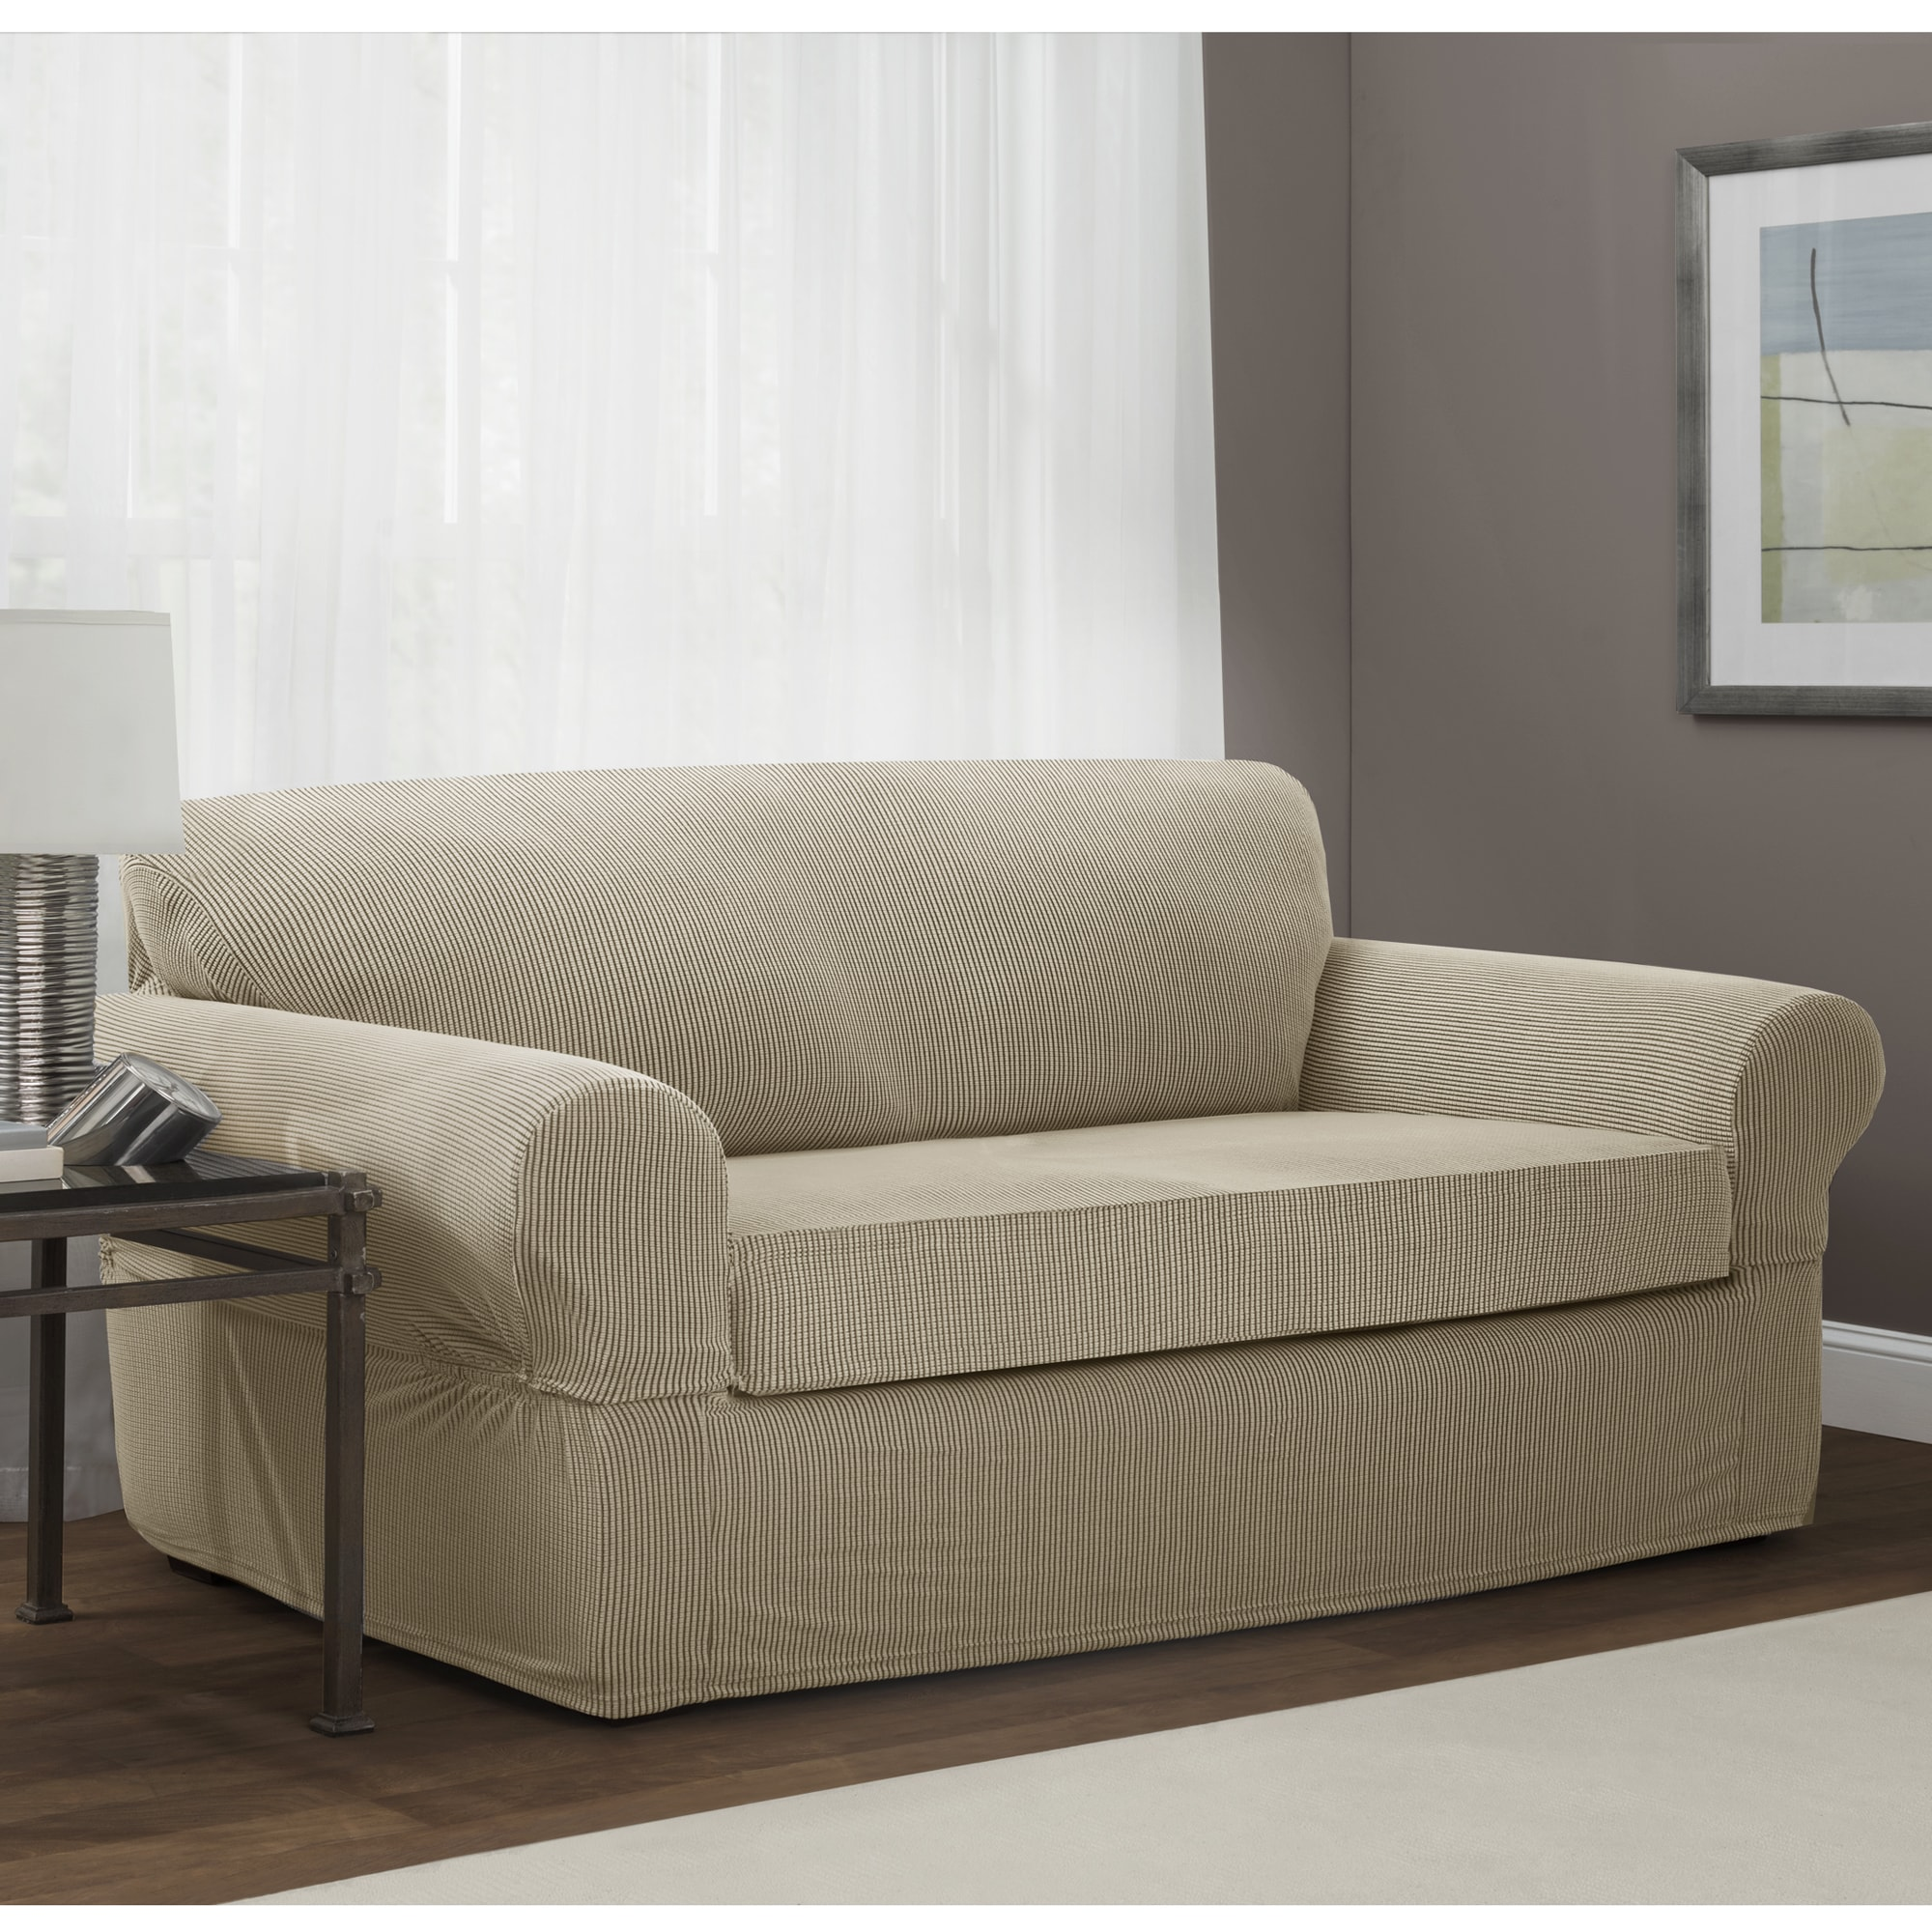 page the sofa llbean duck slip covers amazon cotton at slipcover maker all white furniture picture staggering colors cheap tight size sofaipcovers of inclusive ideas slipcovers stretch fitted slipcoverssofa full